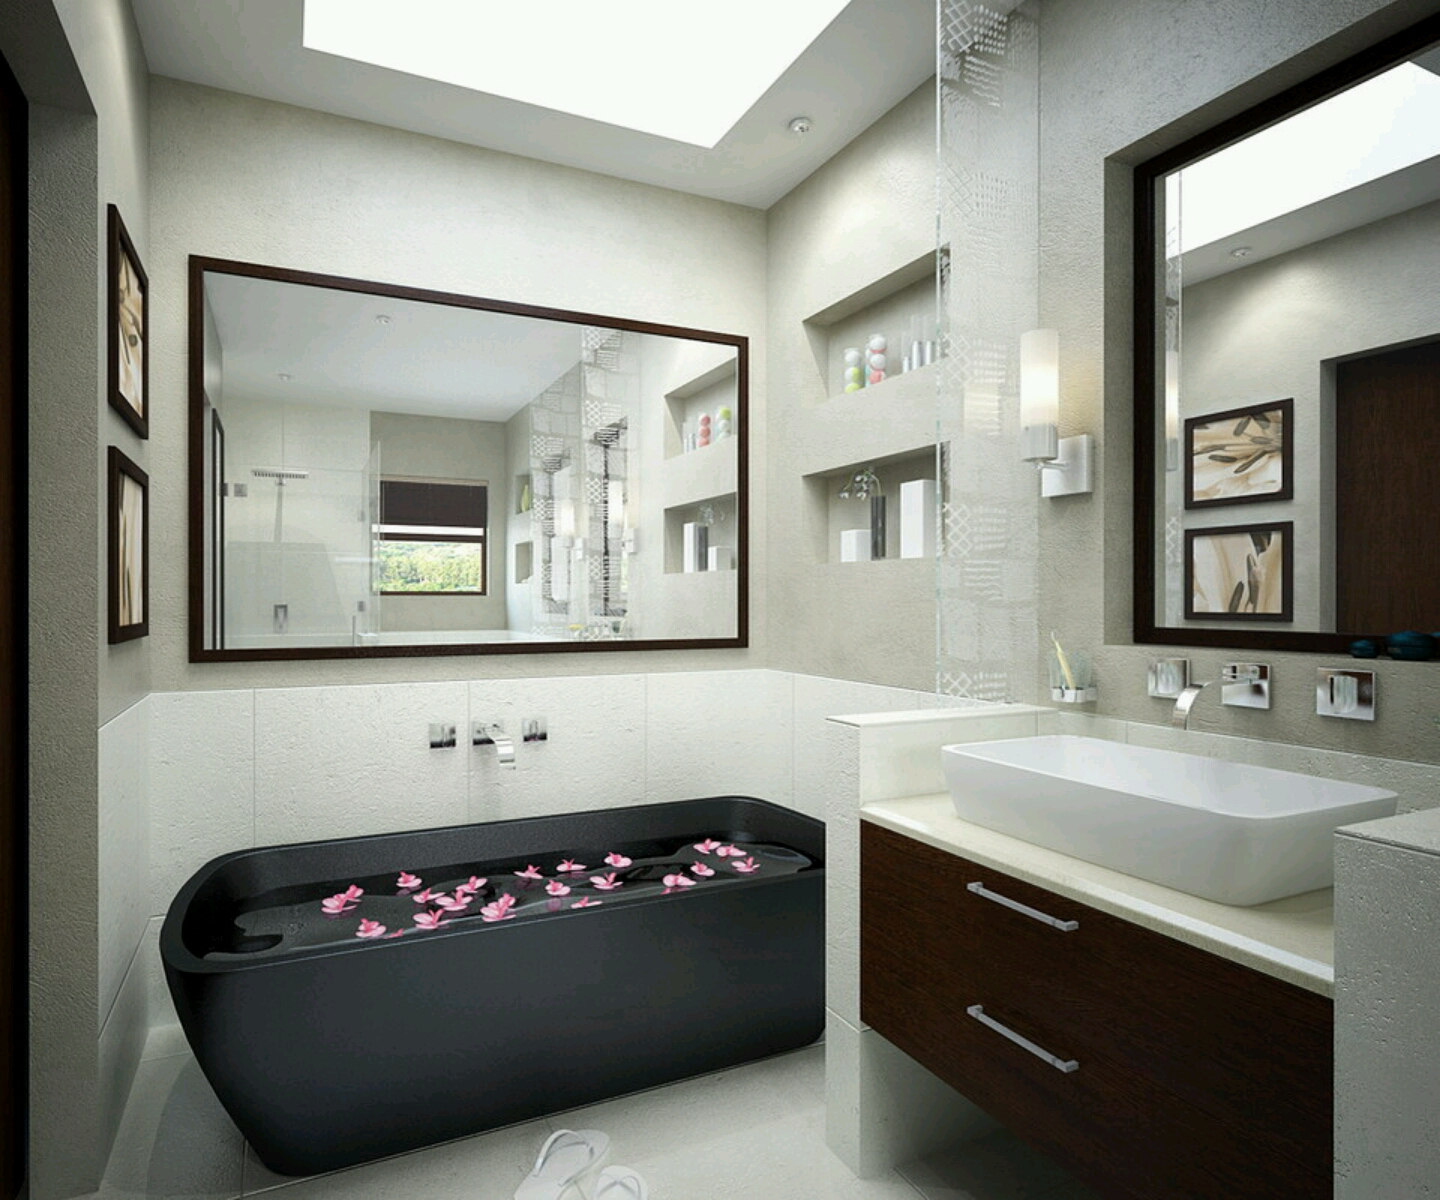 Modern bathrooms cabinets designs furniture gallery - Modern bathroom images ...